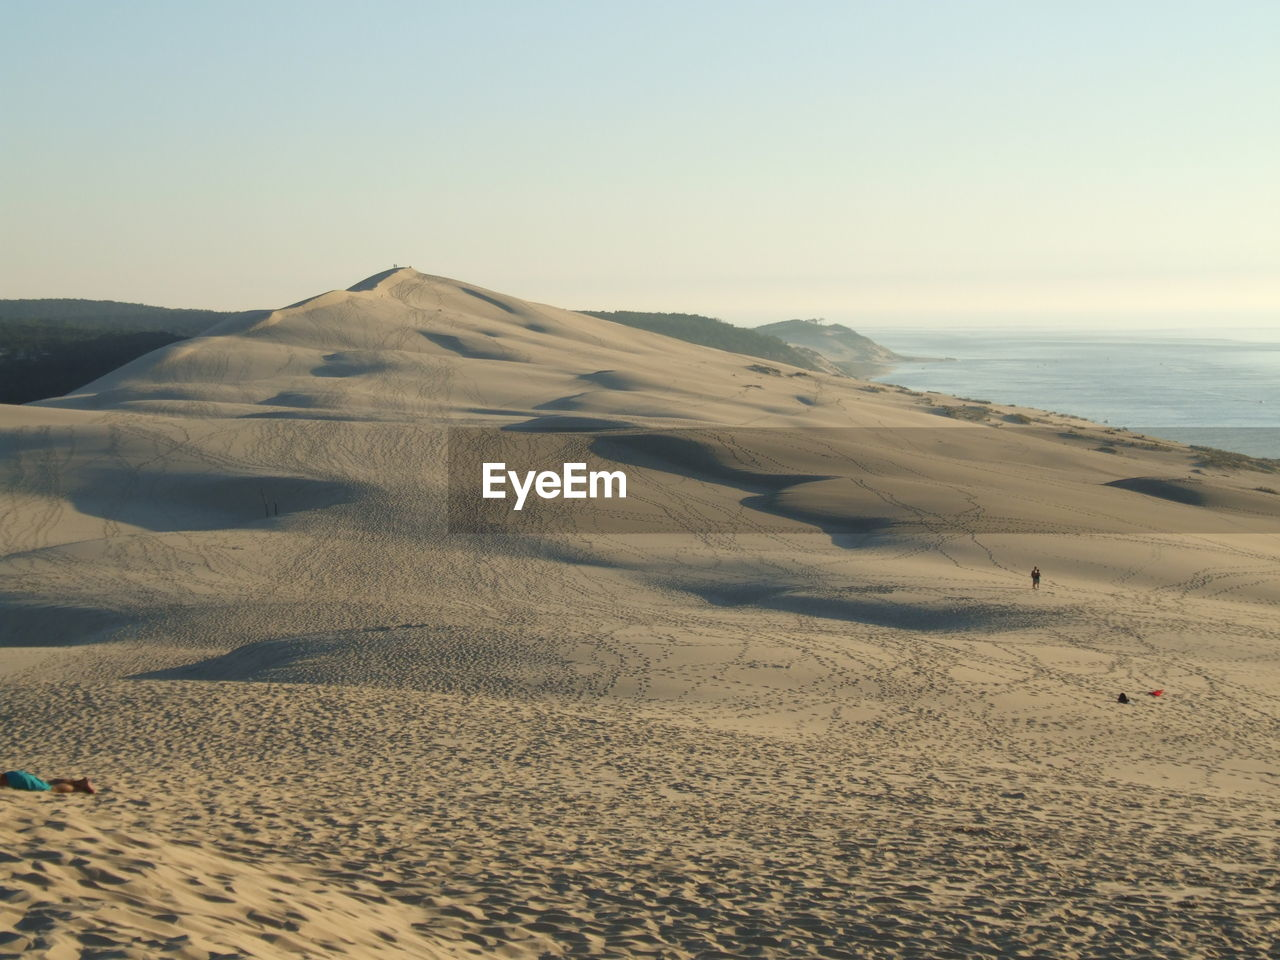 tranquil scene, scenics, nature, sand, tranquility, beauty in nature, outdoors, landscape, beach, day, clear sky, sand dune, sky, travel destinations, no people, sea, desert